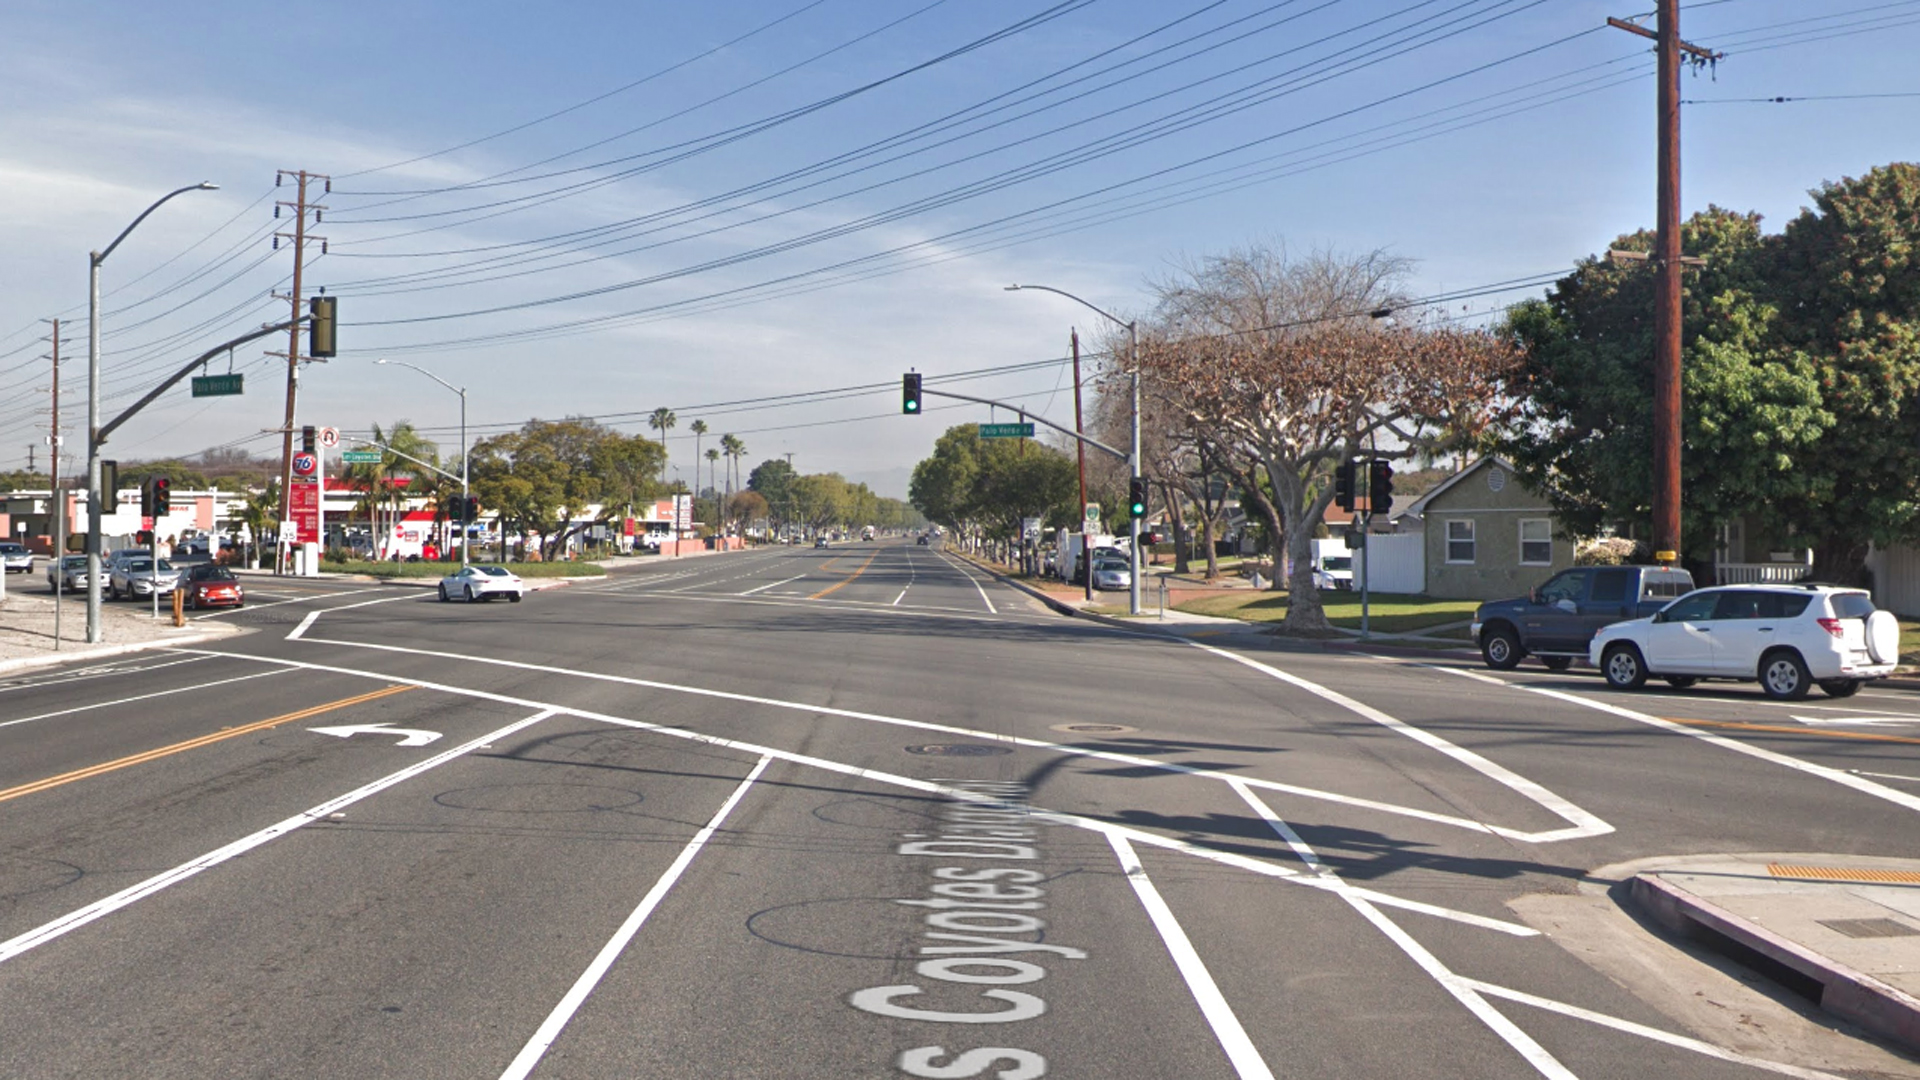 The intersection of Los Coyotes Diagonal and Palo Verde Avenue in Long Beach, as pictured in a Google Street View image in January of 2018.